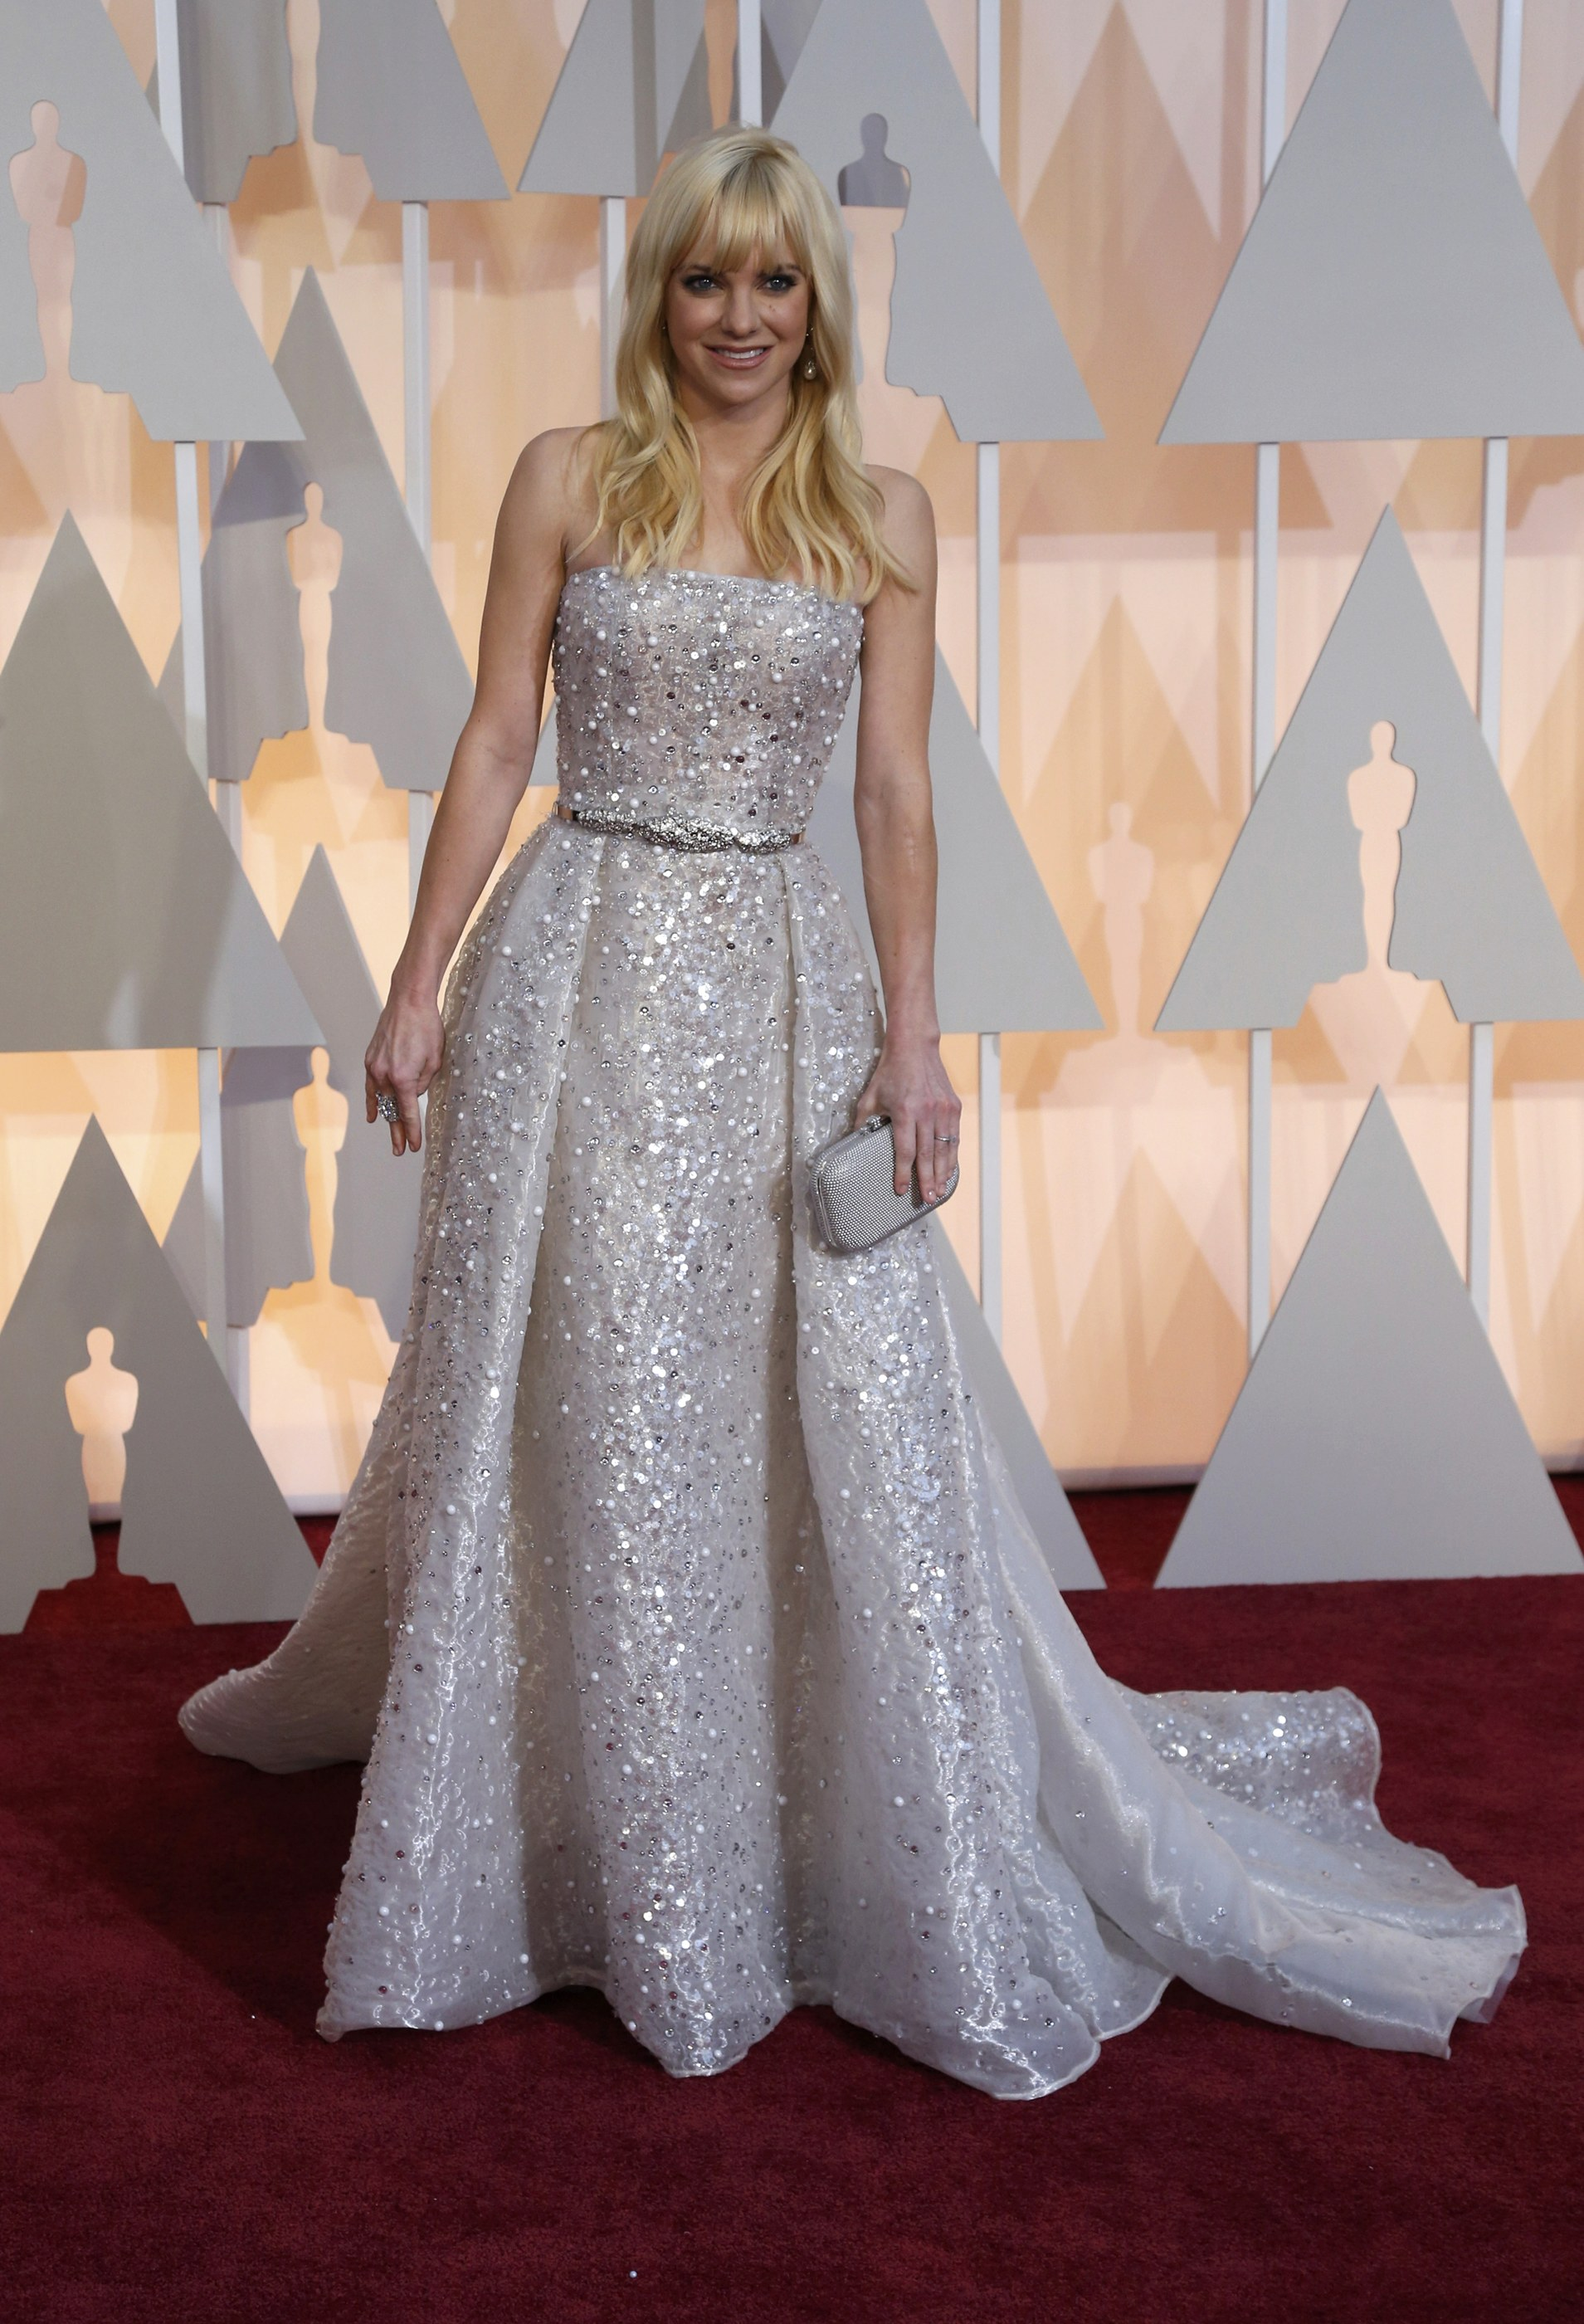 Actress Anna Faris arrives at the 87th Academy Awards in Hollywood